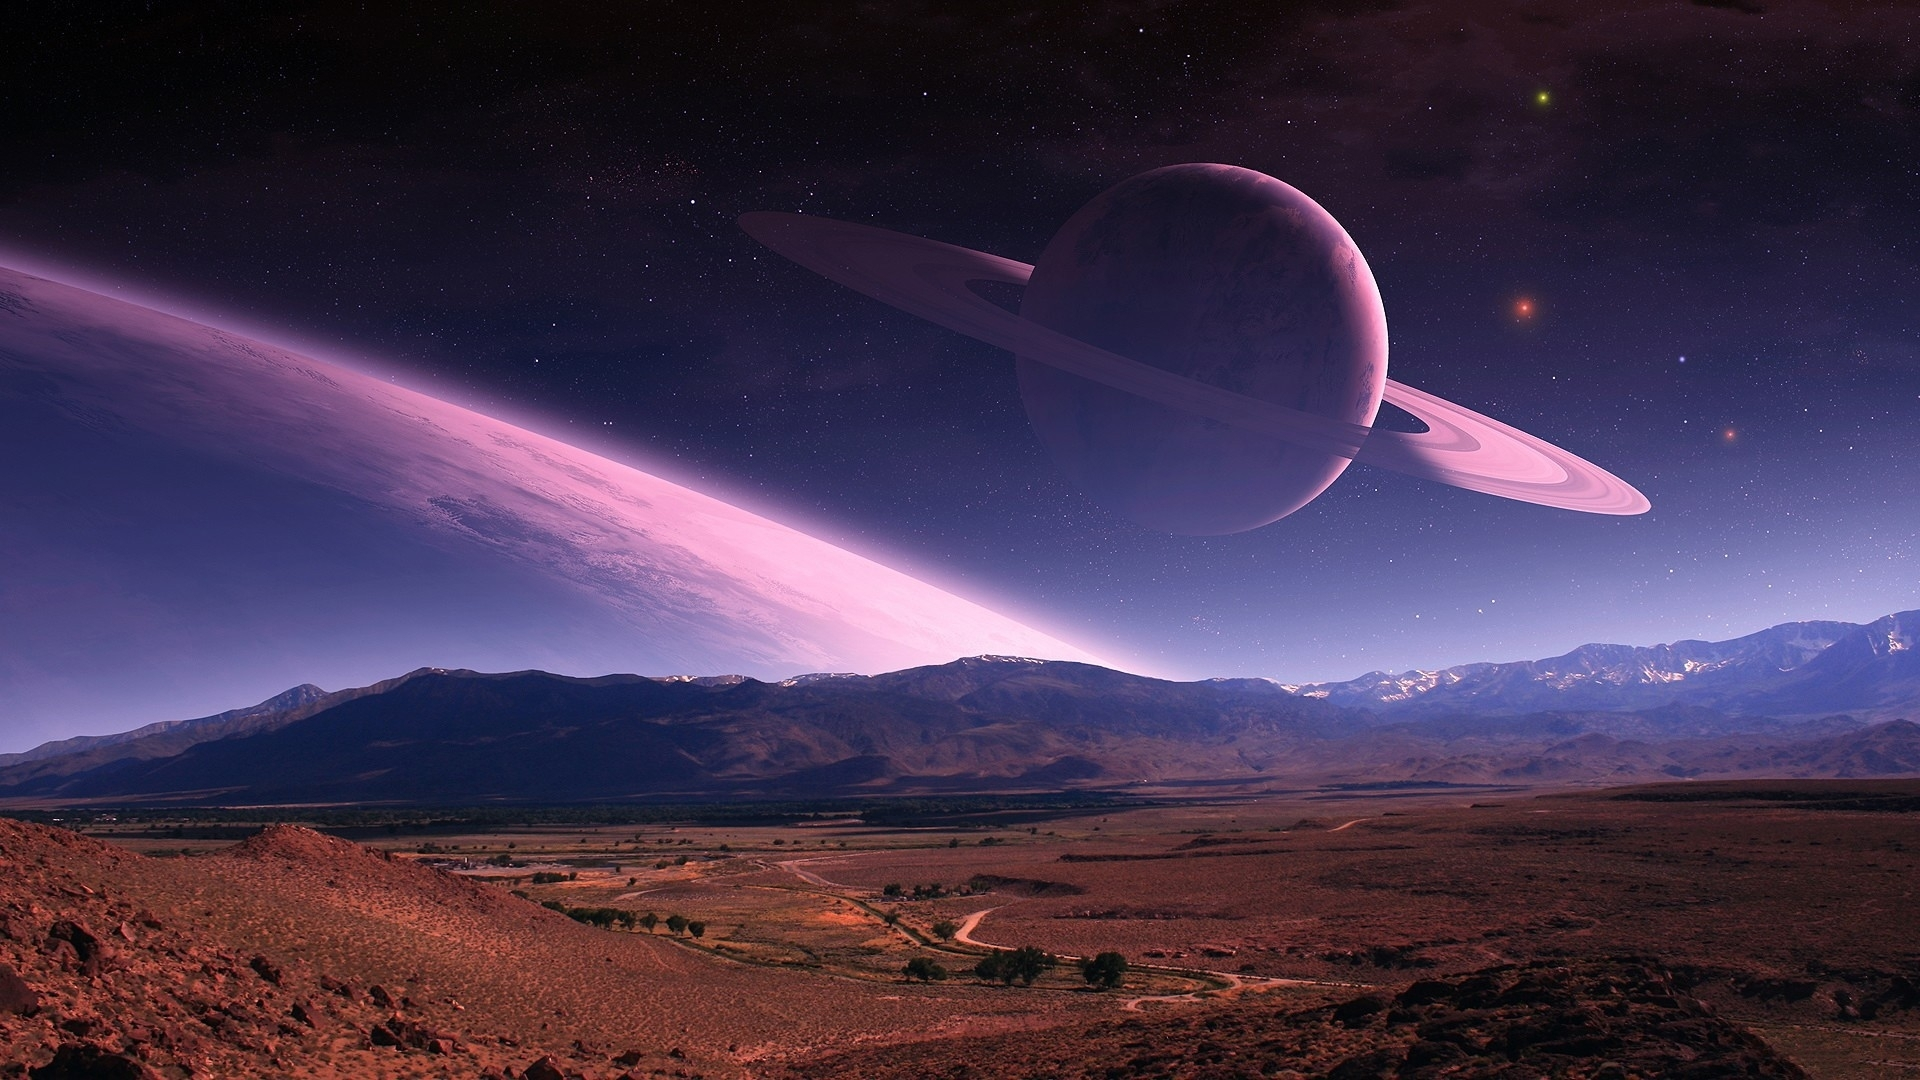 3d planets wallpaper hd - photo #43